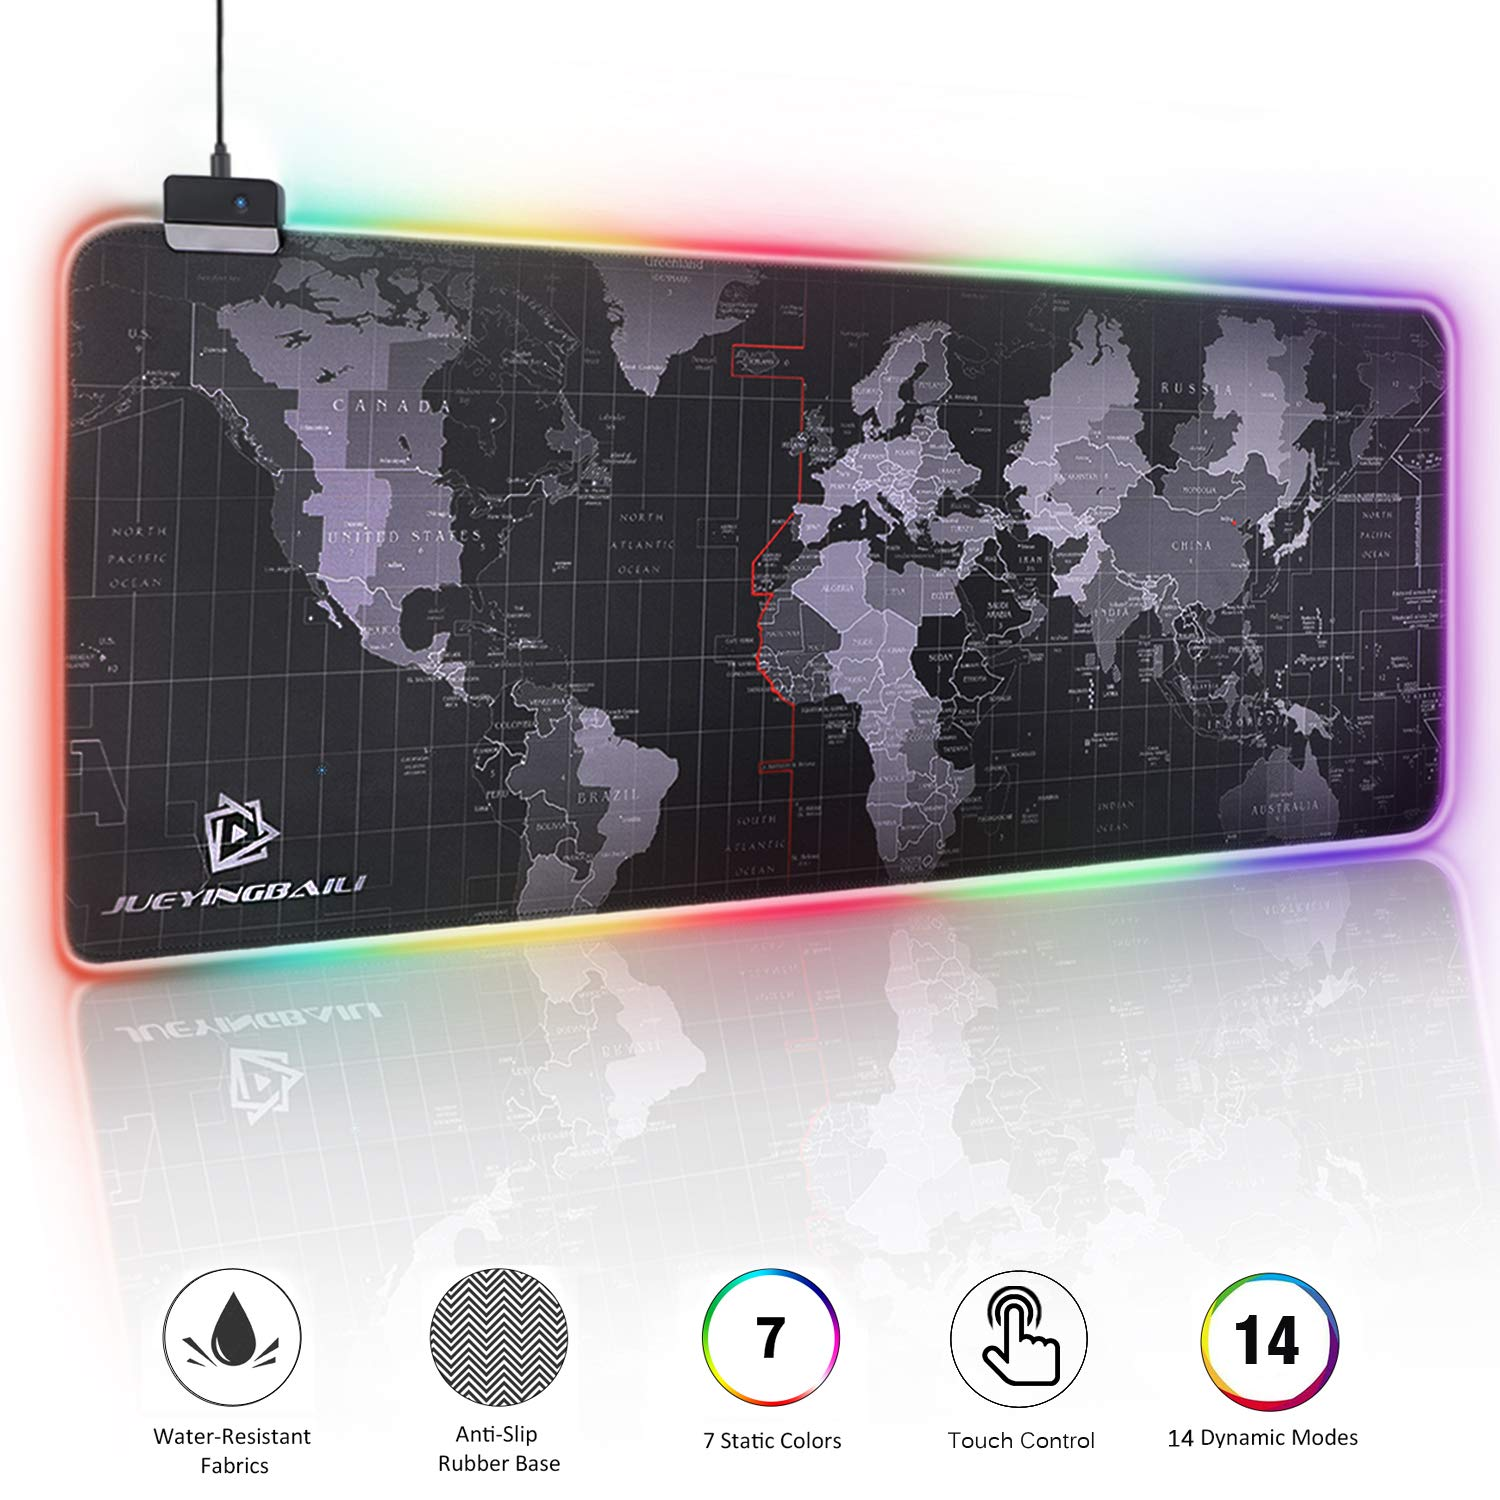 "RGB Gaming Mouse Pad - Large Cool RGB Gaming Mouse Mat With Nylon Thread Stitched Edges & Smoothly Waterproof Non-Slip Rubber Base (31.5""X 11.8"" with 14 Light Modes)"